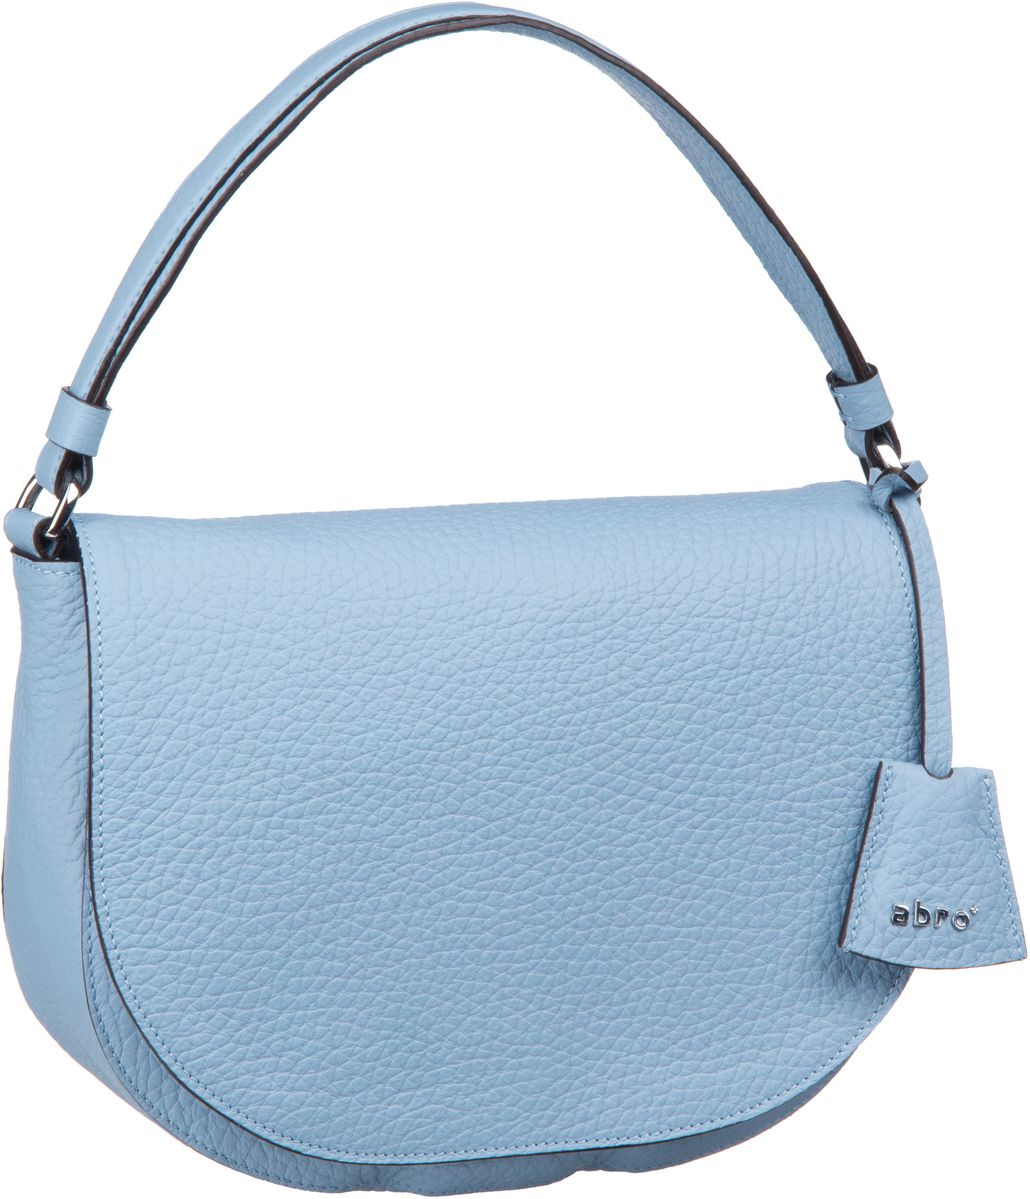 Handtasche Vitello Cervo 27993 Light Blue